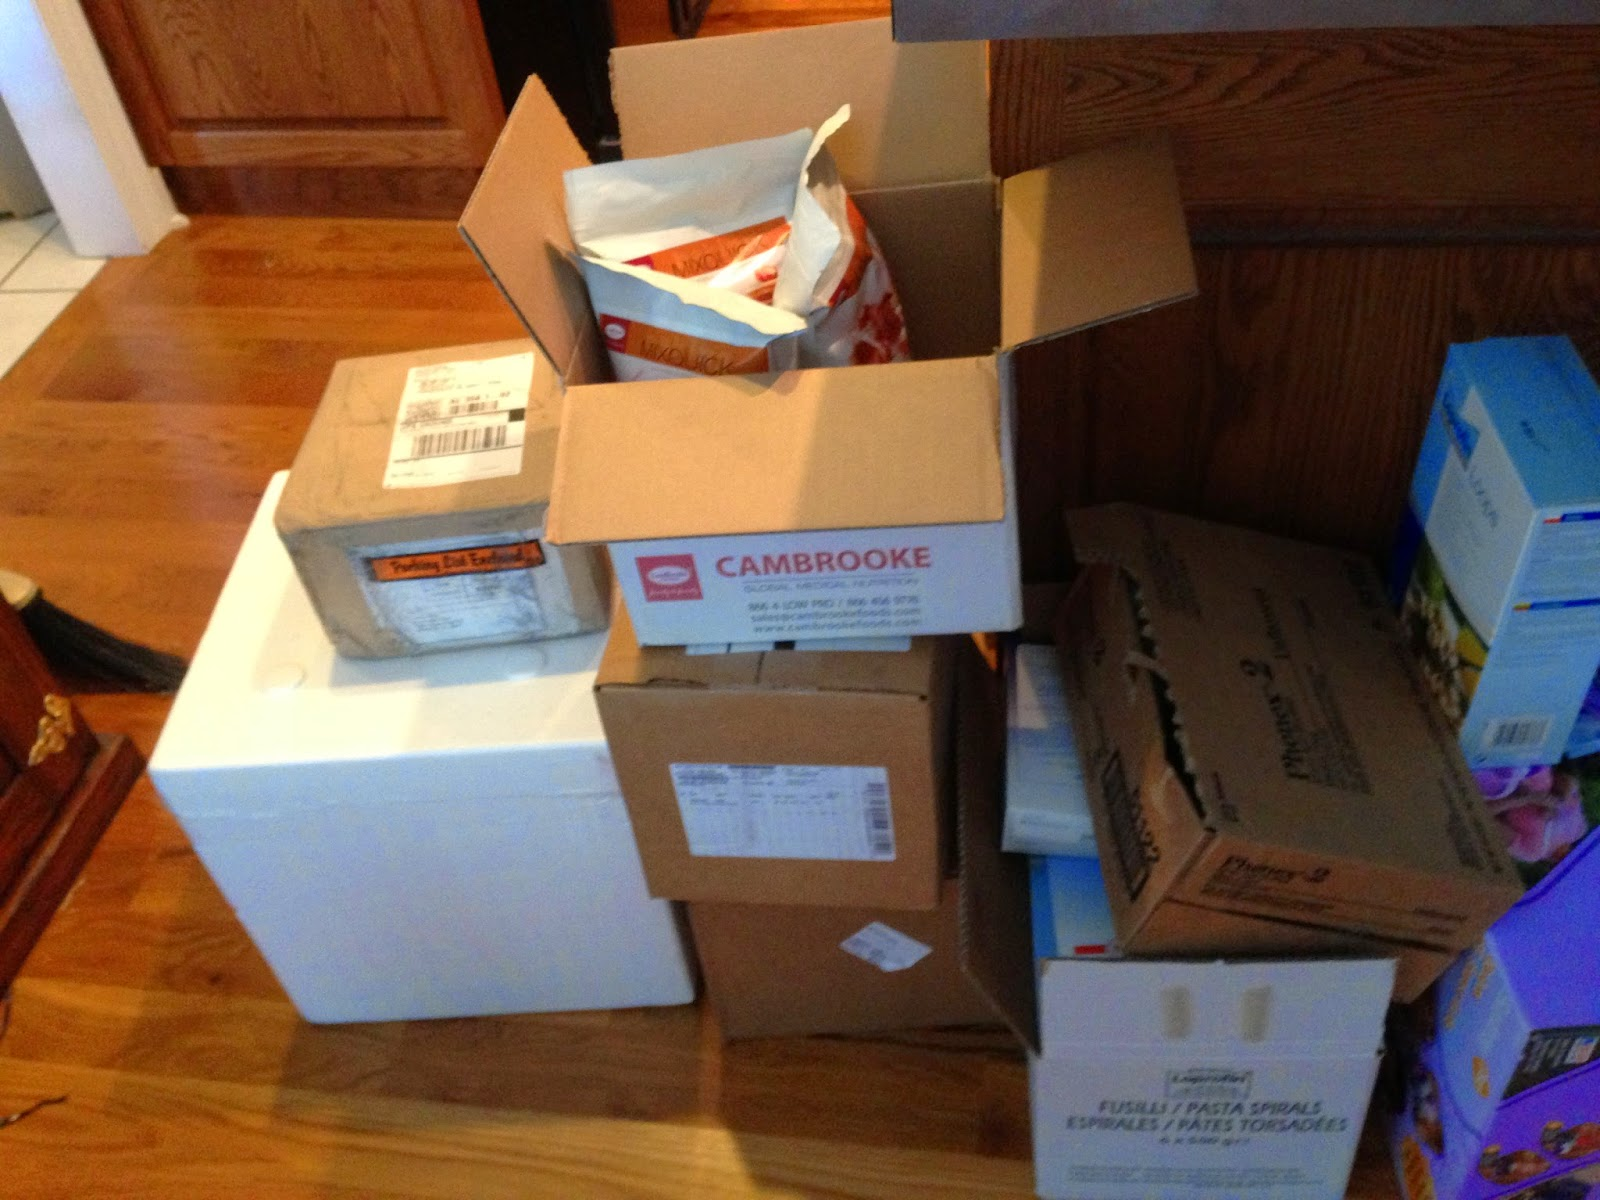 our pku life a day in the life pku ordering and purchasing i began my journey of ordering low protein foods for carson by ing pkunews org there is a box there labeled diet related information